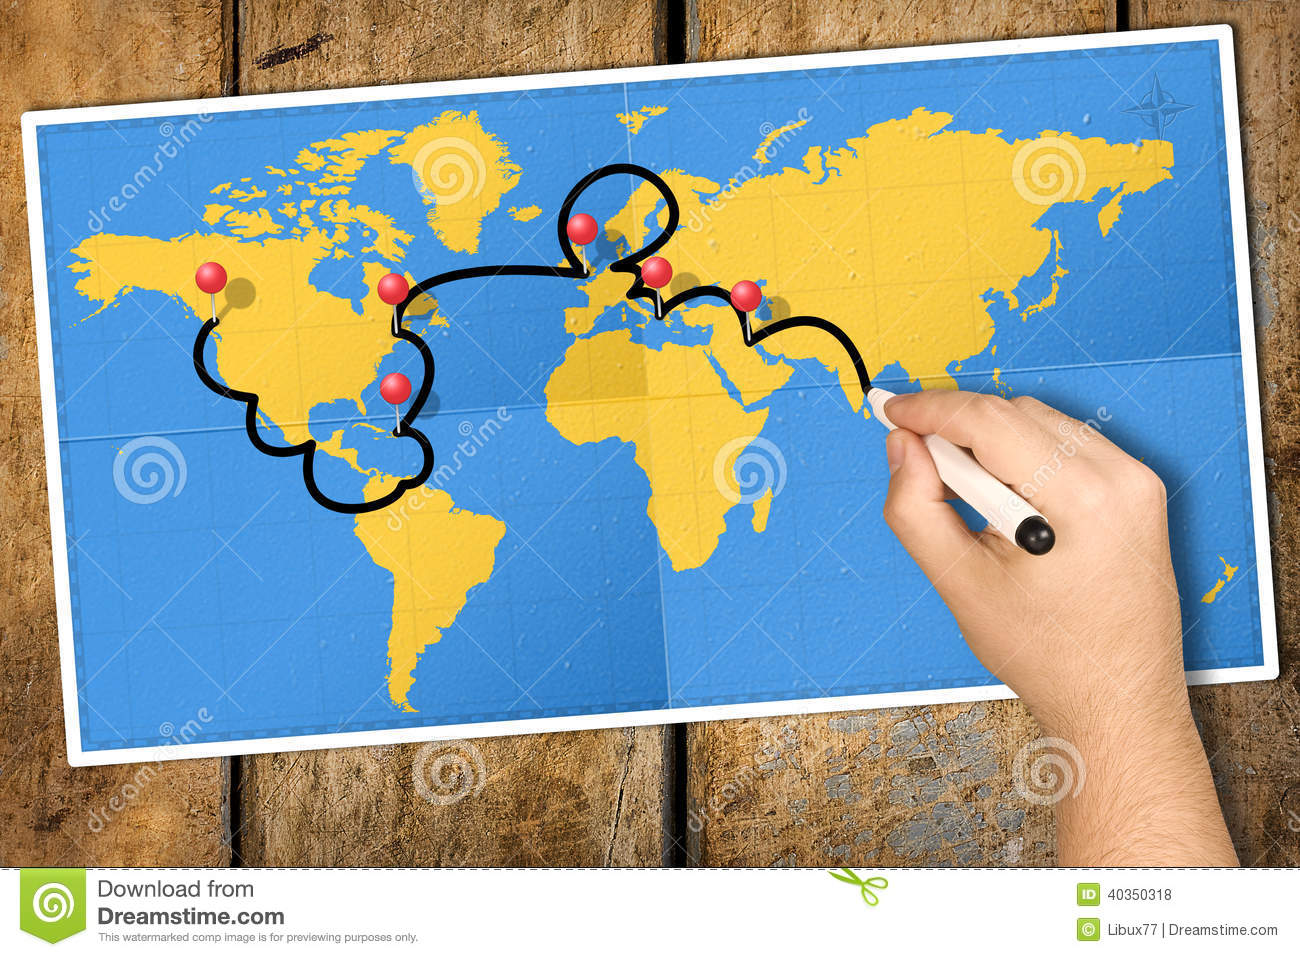 Itinerary world map travel hand marker push pin stock photo itinerary world map travel hand marker push pin gumiabroncs Choice Image